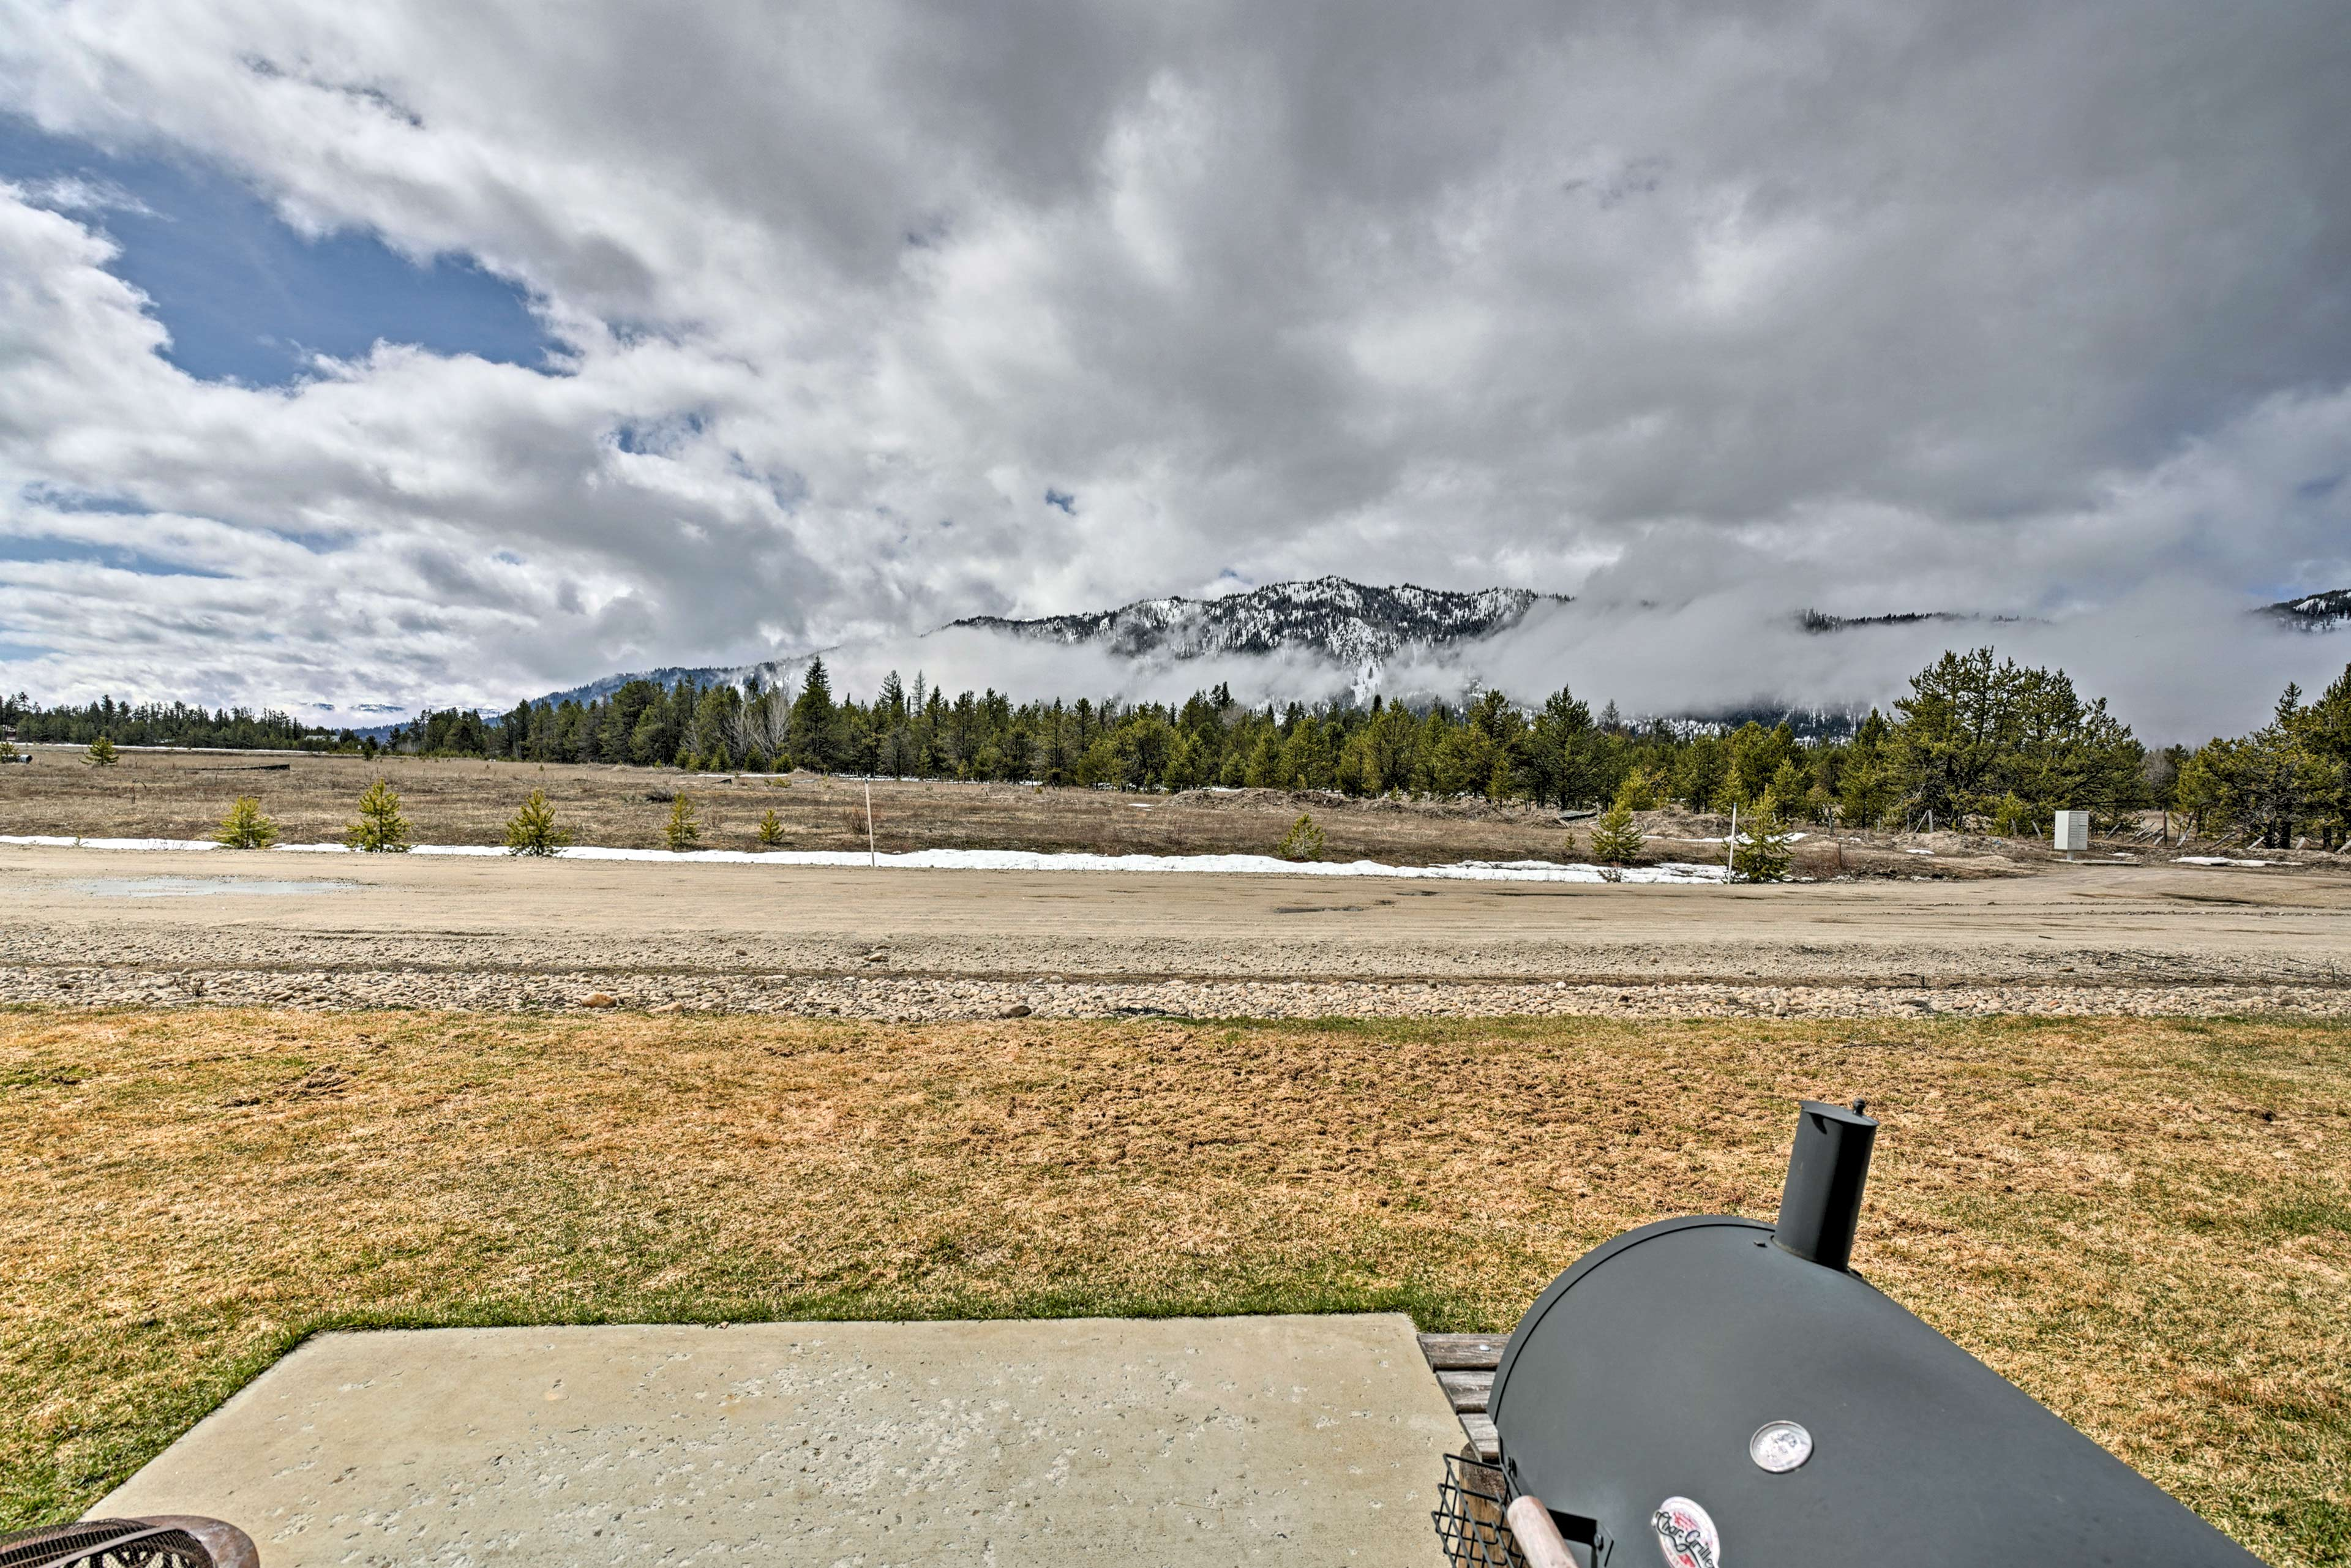 Retreat to the mountains and stay at this vacation rental townhome!